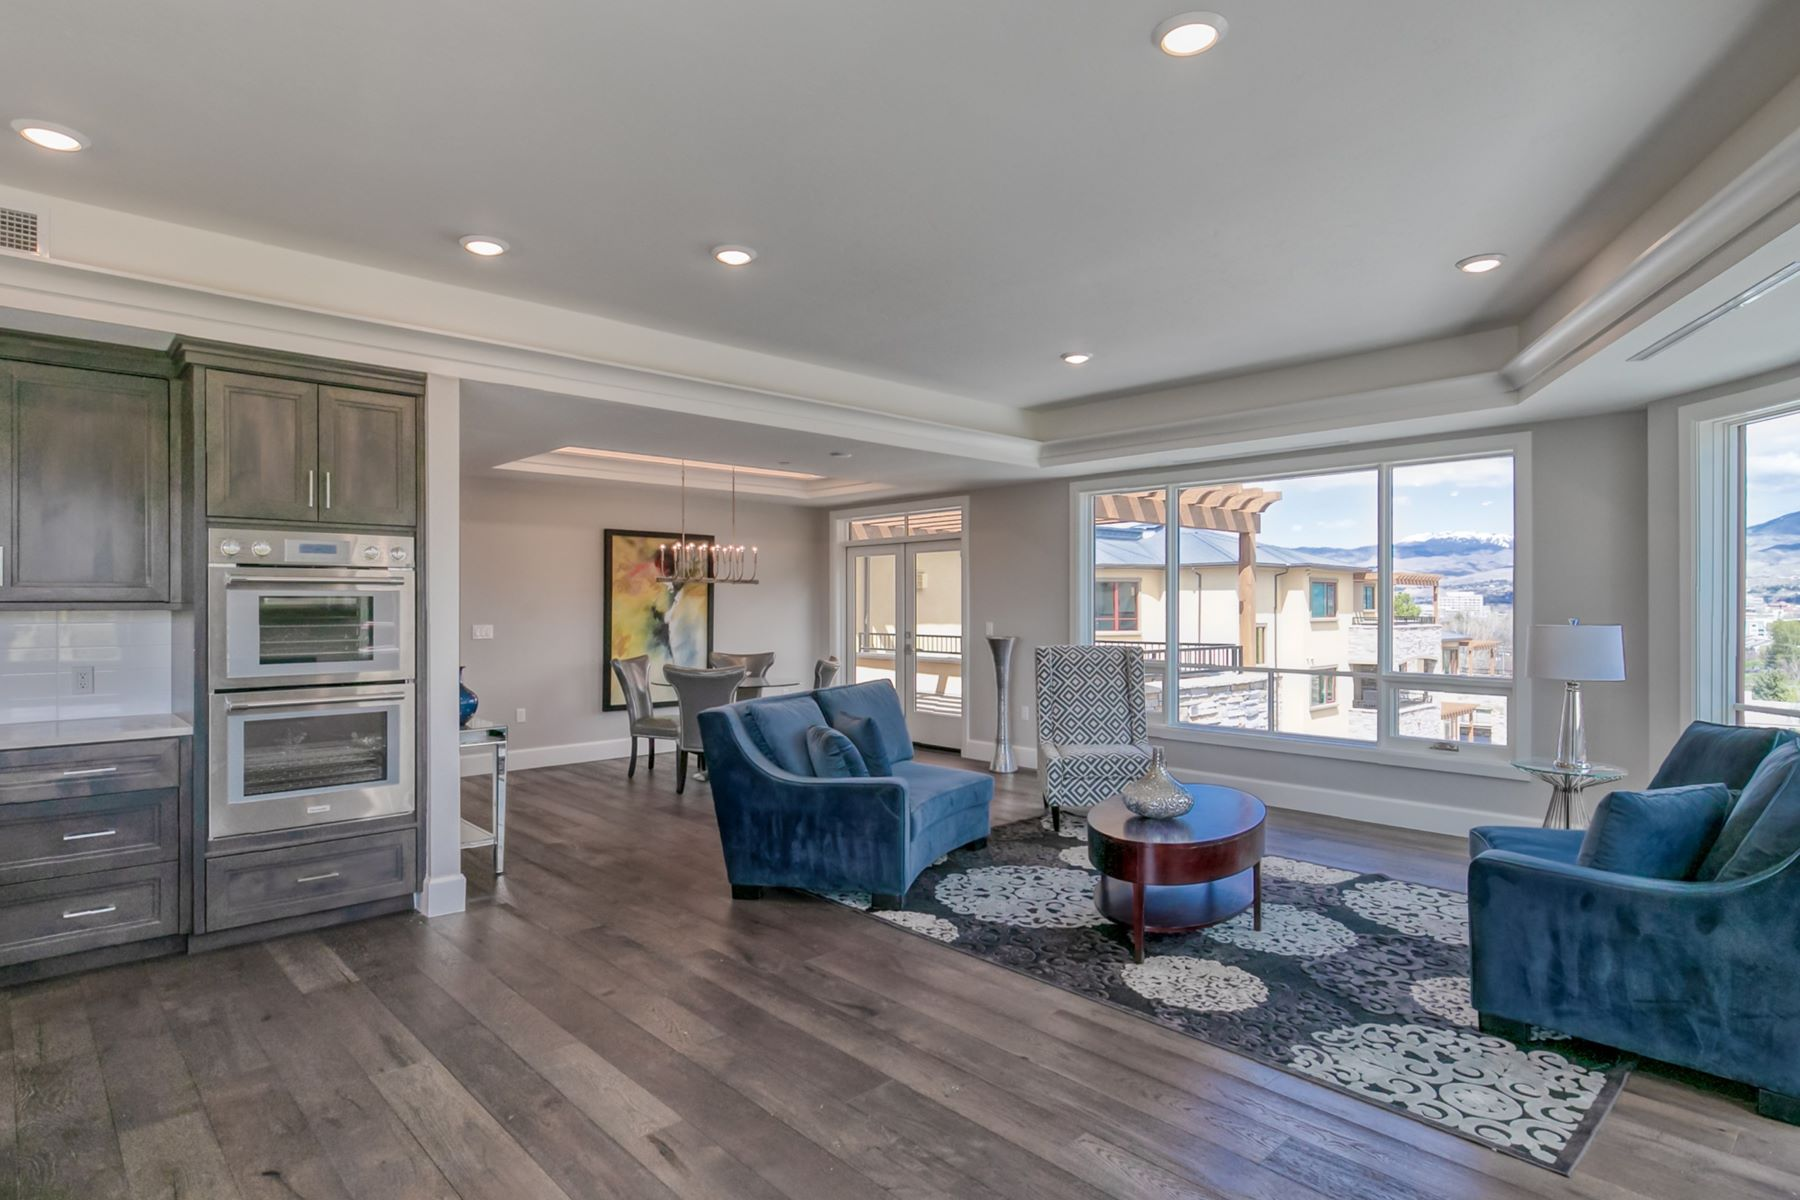 Condominiums for Sale at 3075 West Crescent Rim Drive 304 304 Boise, Idaho 83706 United States